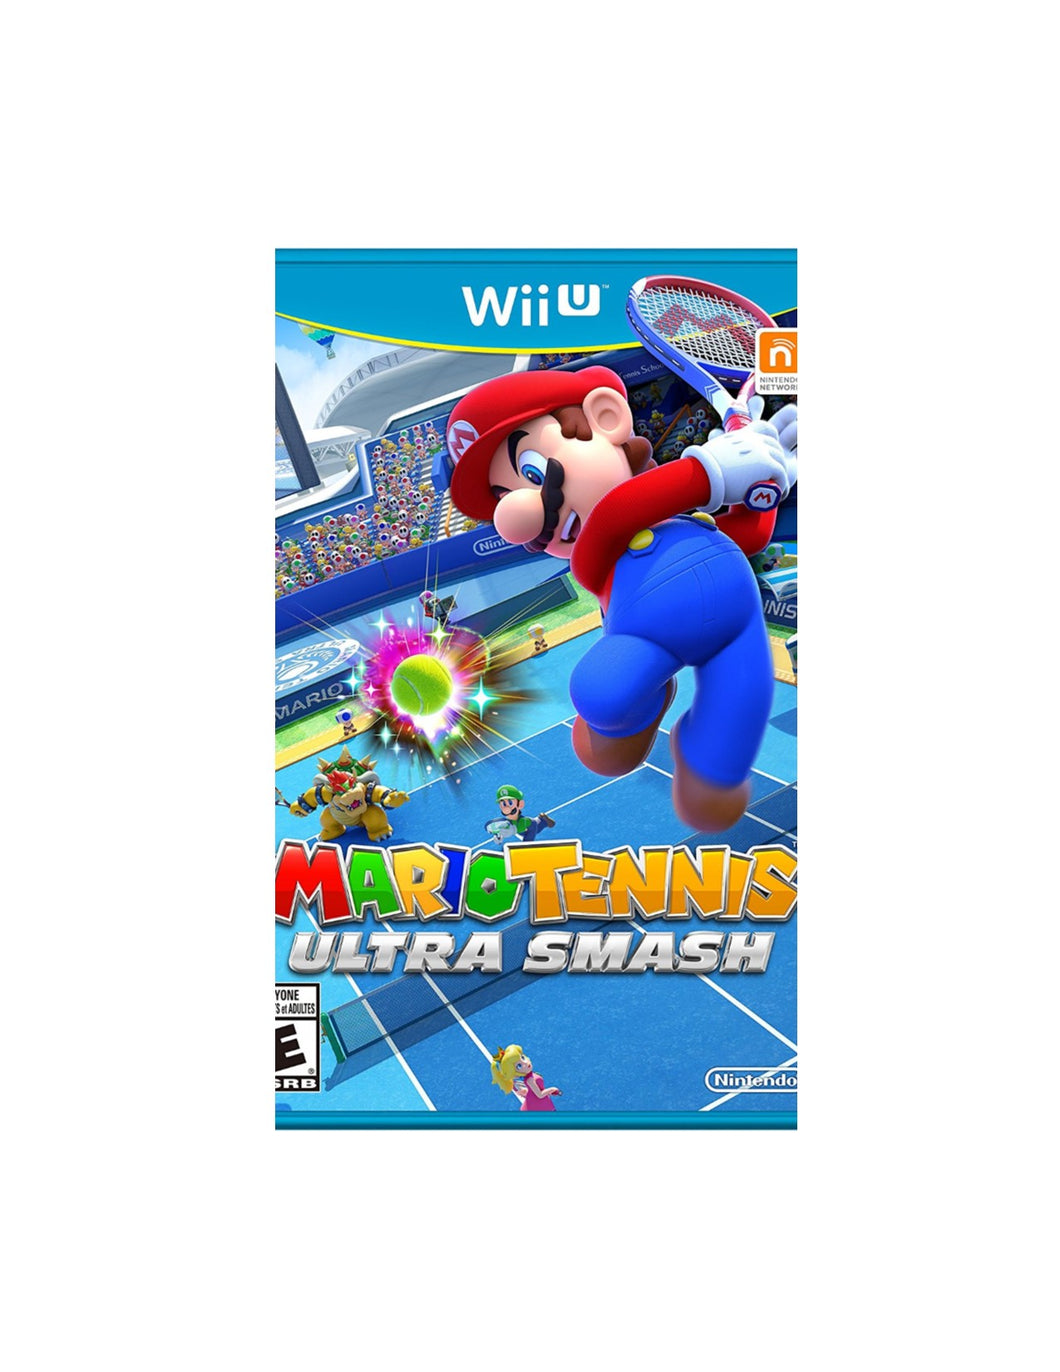 Mario Tennis: Ultra Smash - Wii U